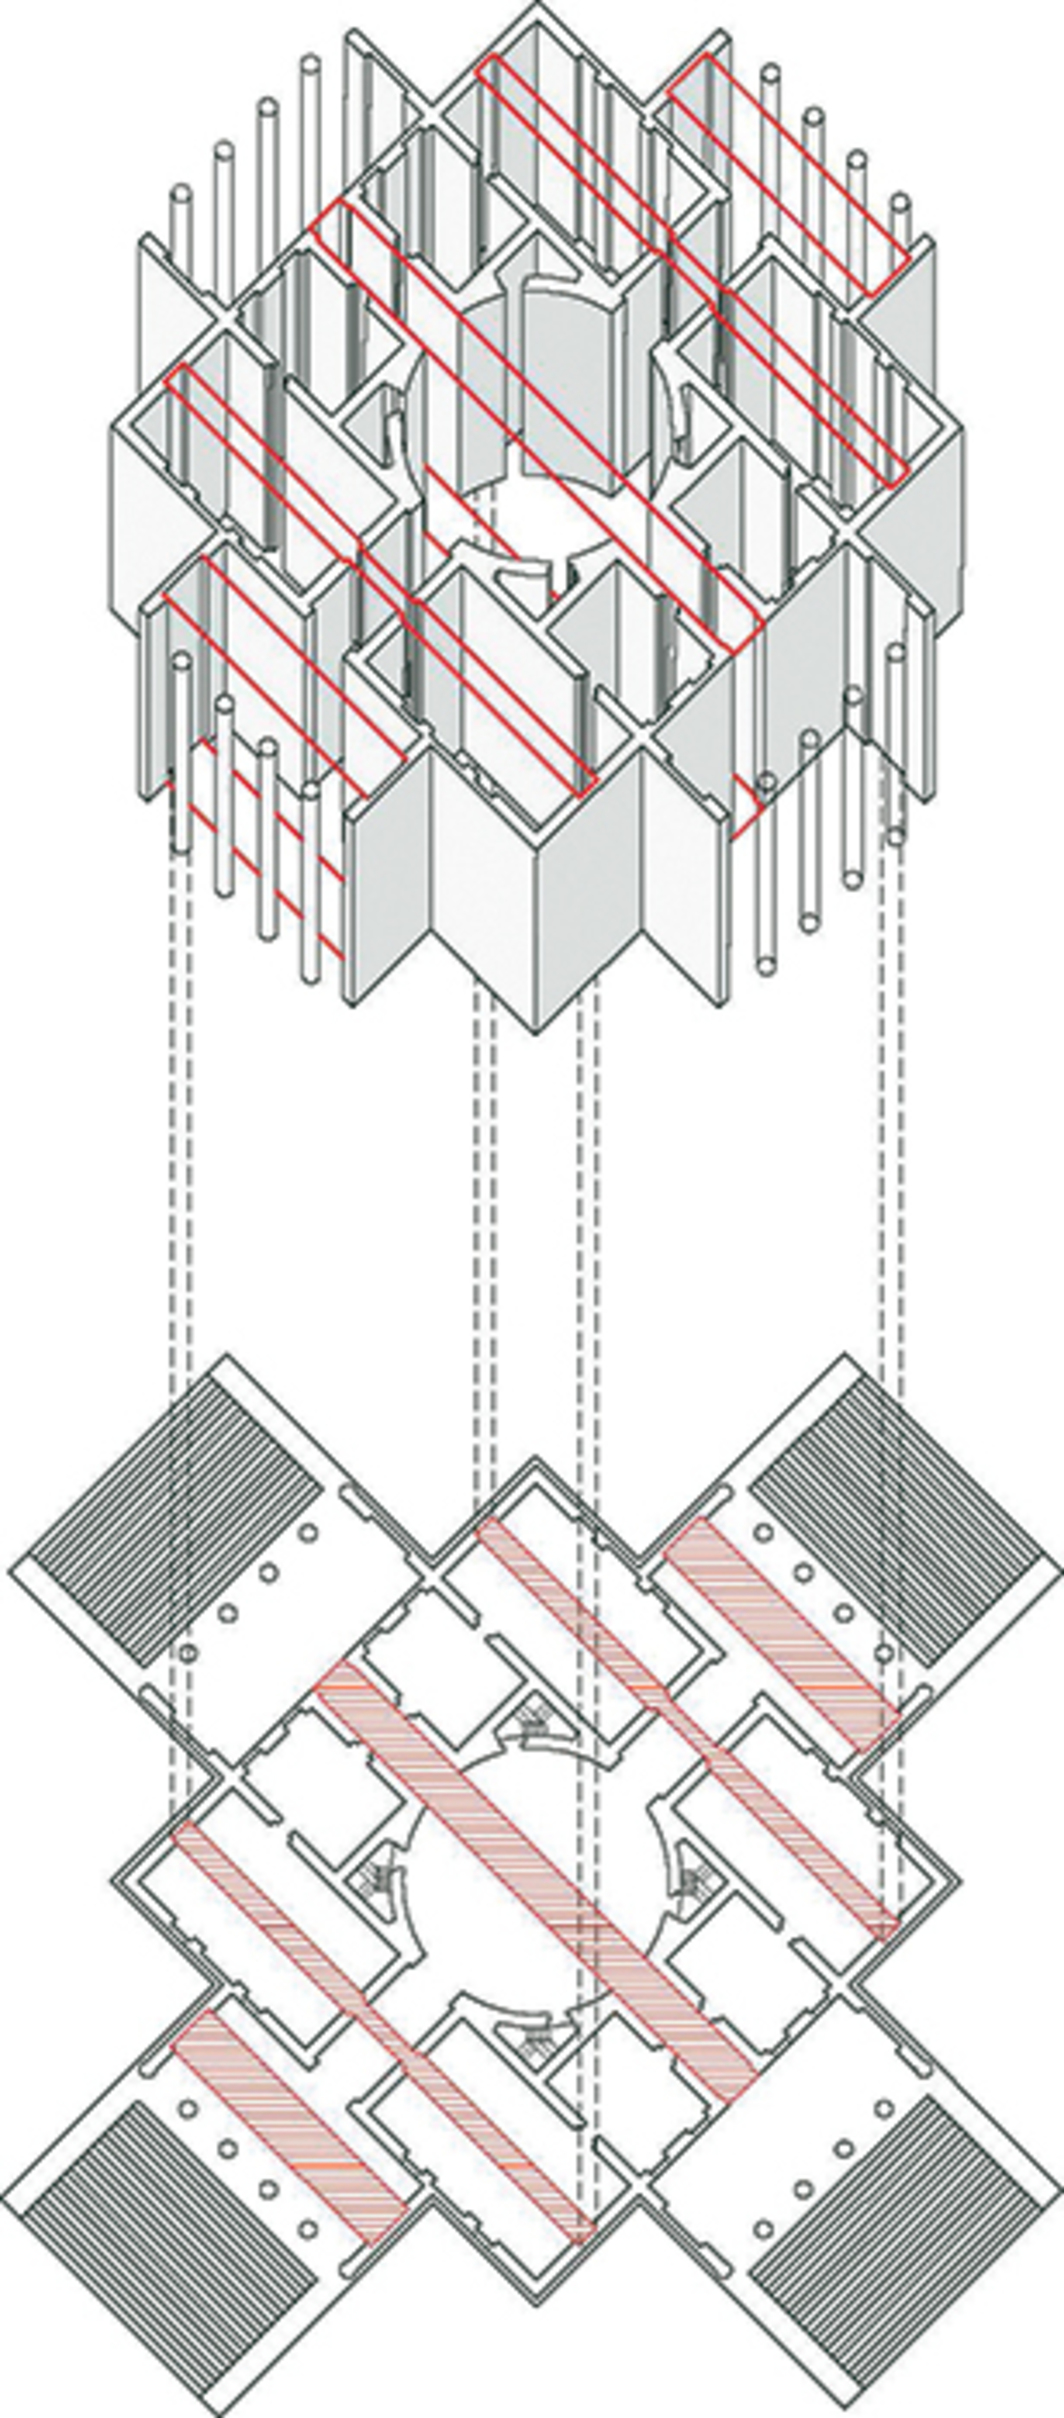 Peter Eisenman and Matt Roman's diagram of Andrea Palladio's Villa Rotonda (1566), 2015.